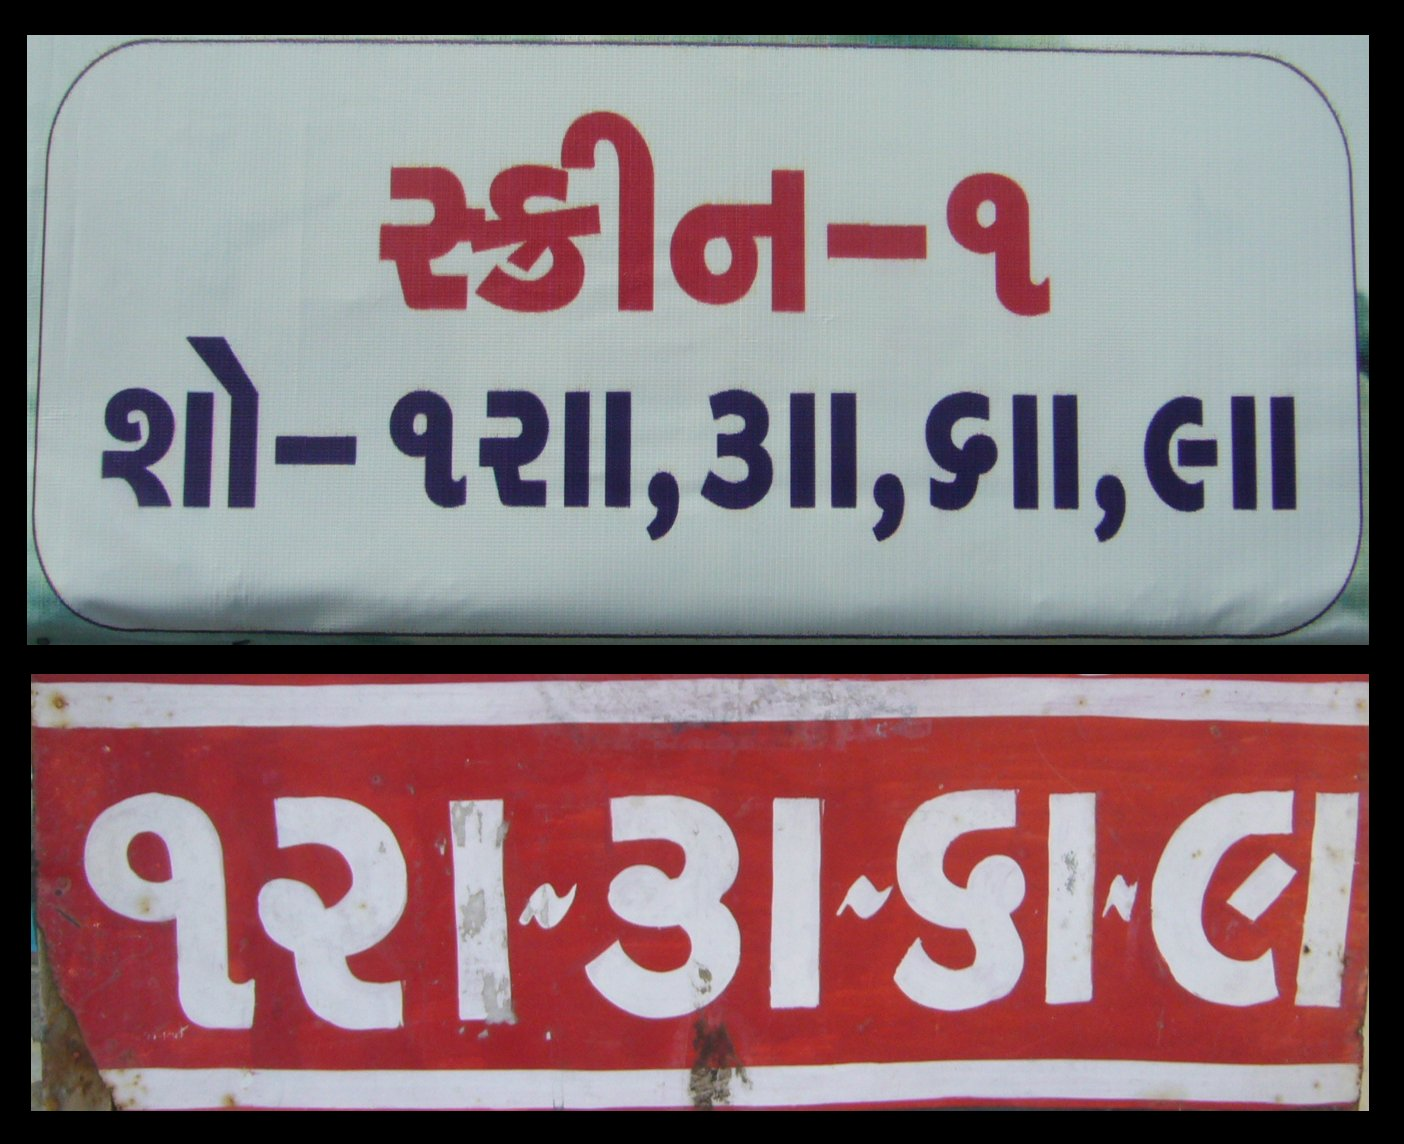 Cinema show times in Gujarati, from Wikimedia Commons (CC-BY-SA 3.0)